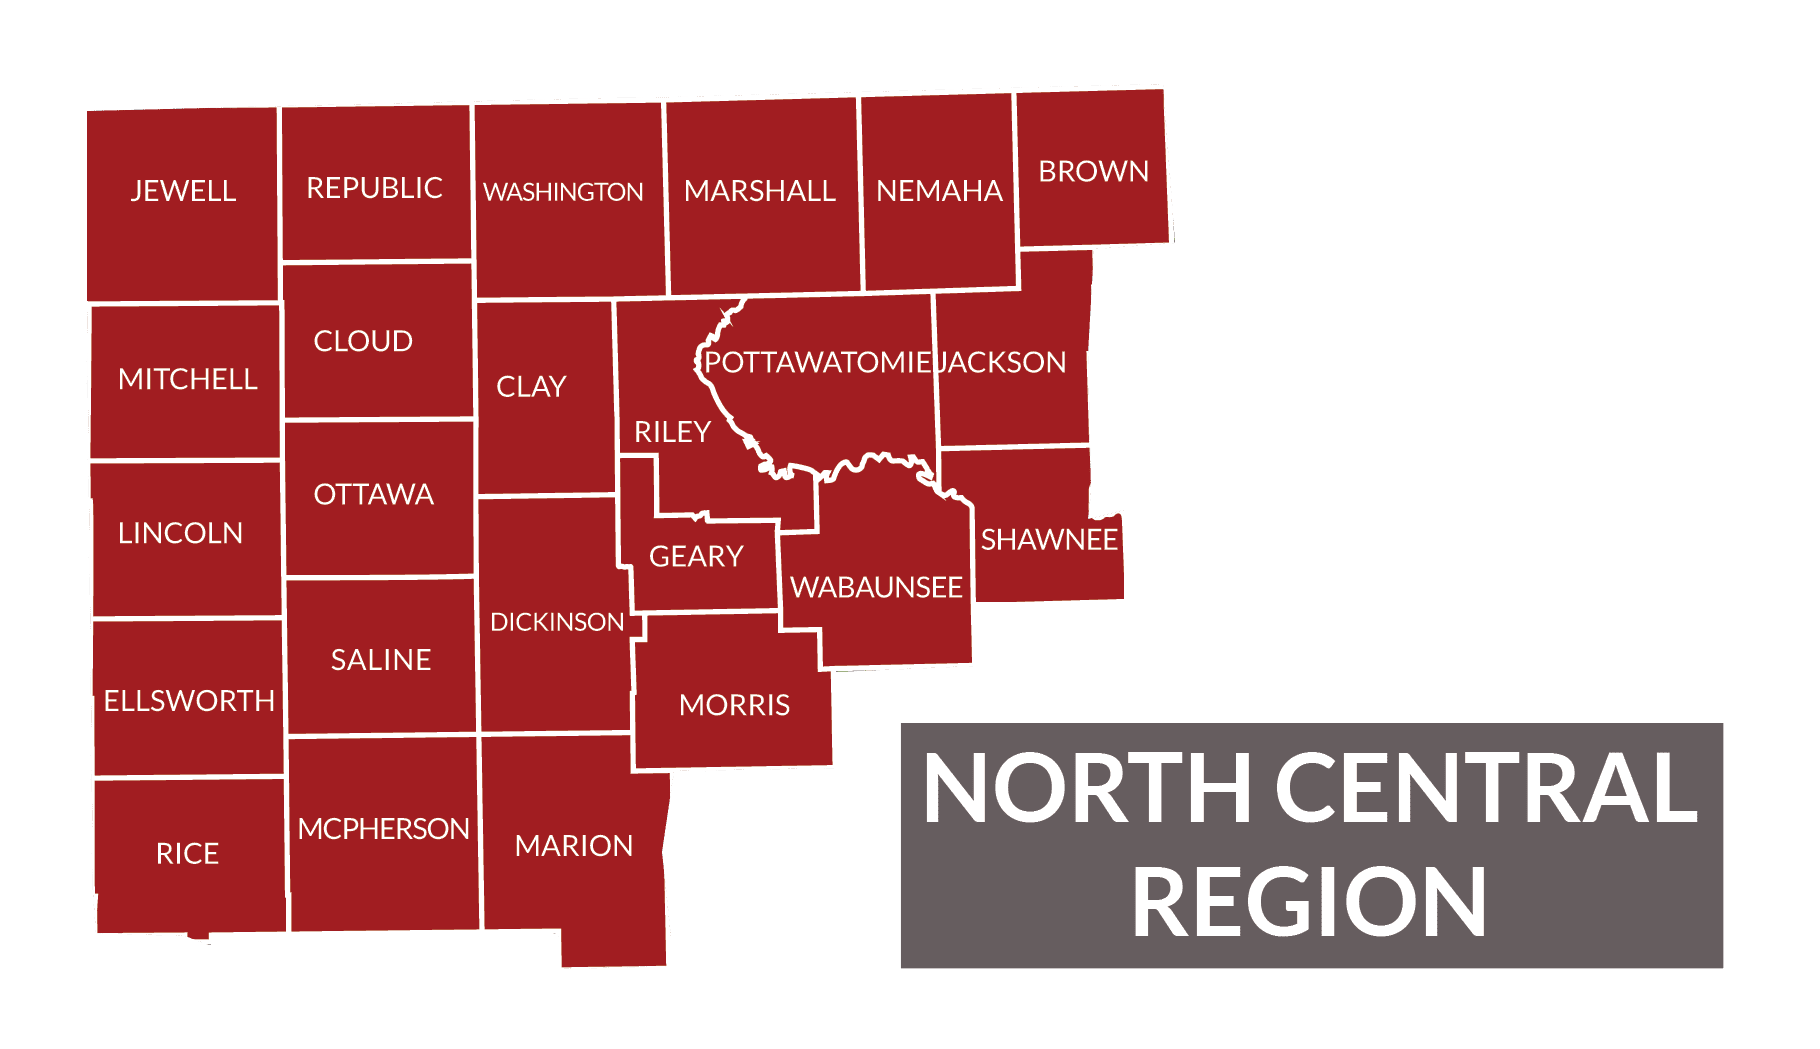 North Central Region - Special Olympics